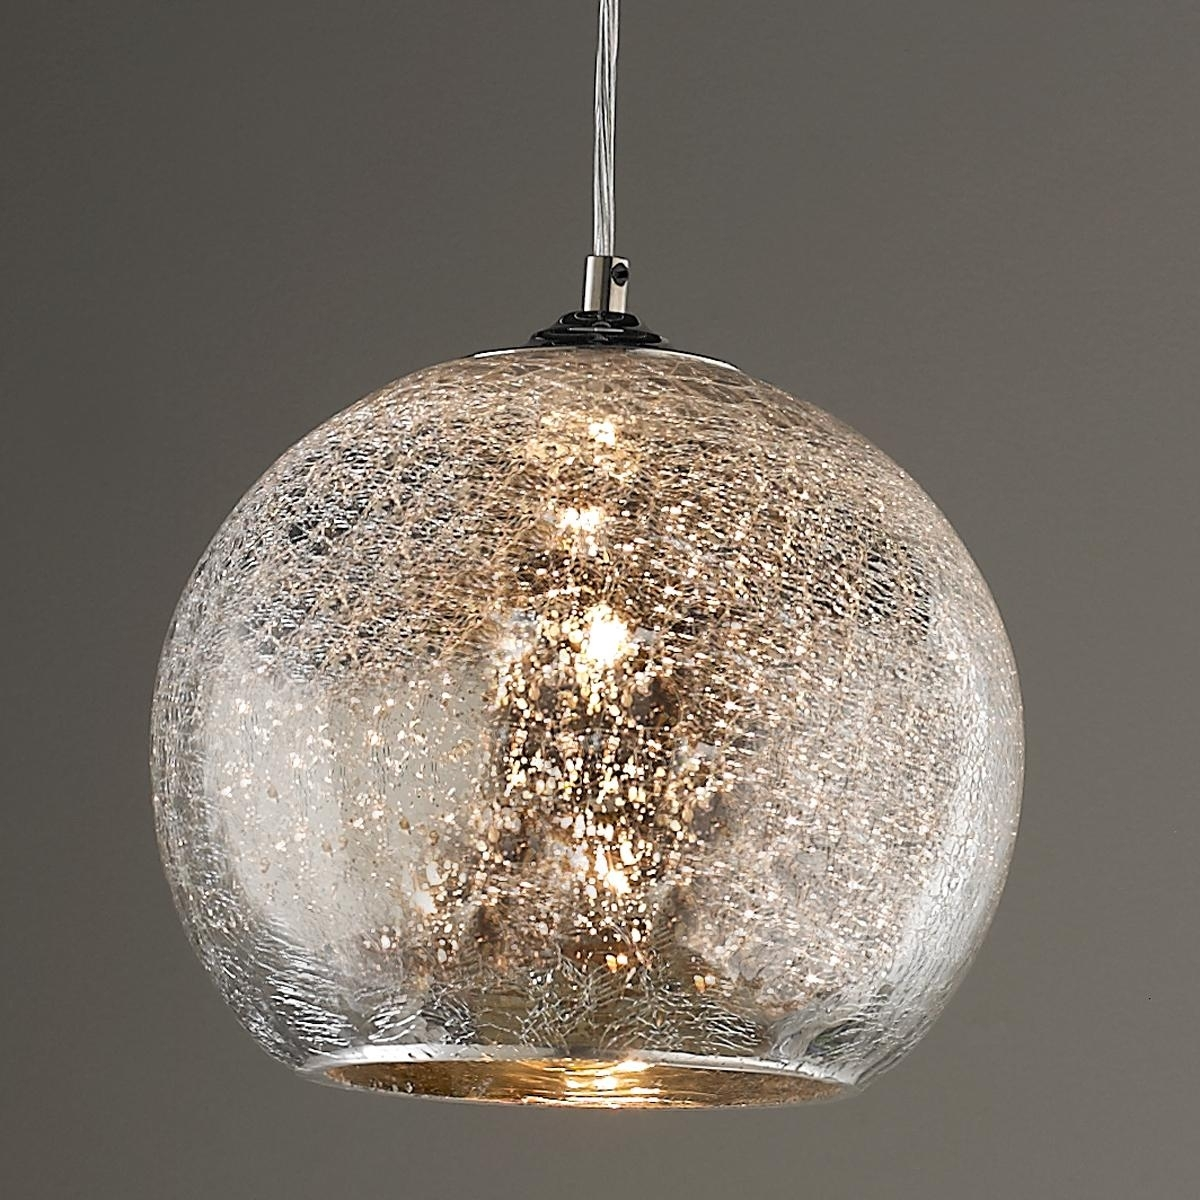 32 Most Artistic Amusing Crackle Glass Pendant Lights On Art Light For Outdoor Rattan Hanging Lights (View 2 of 15)